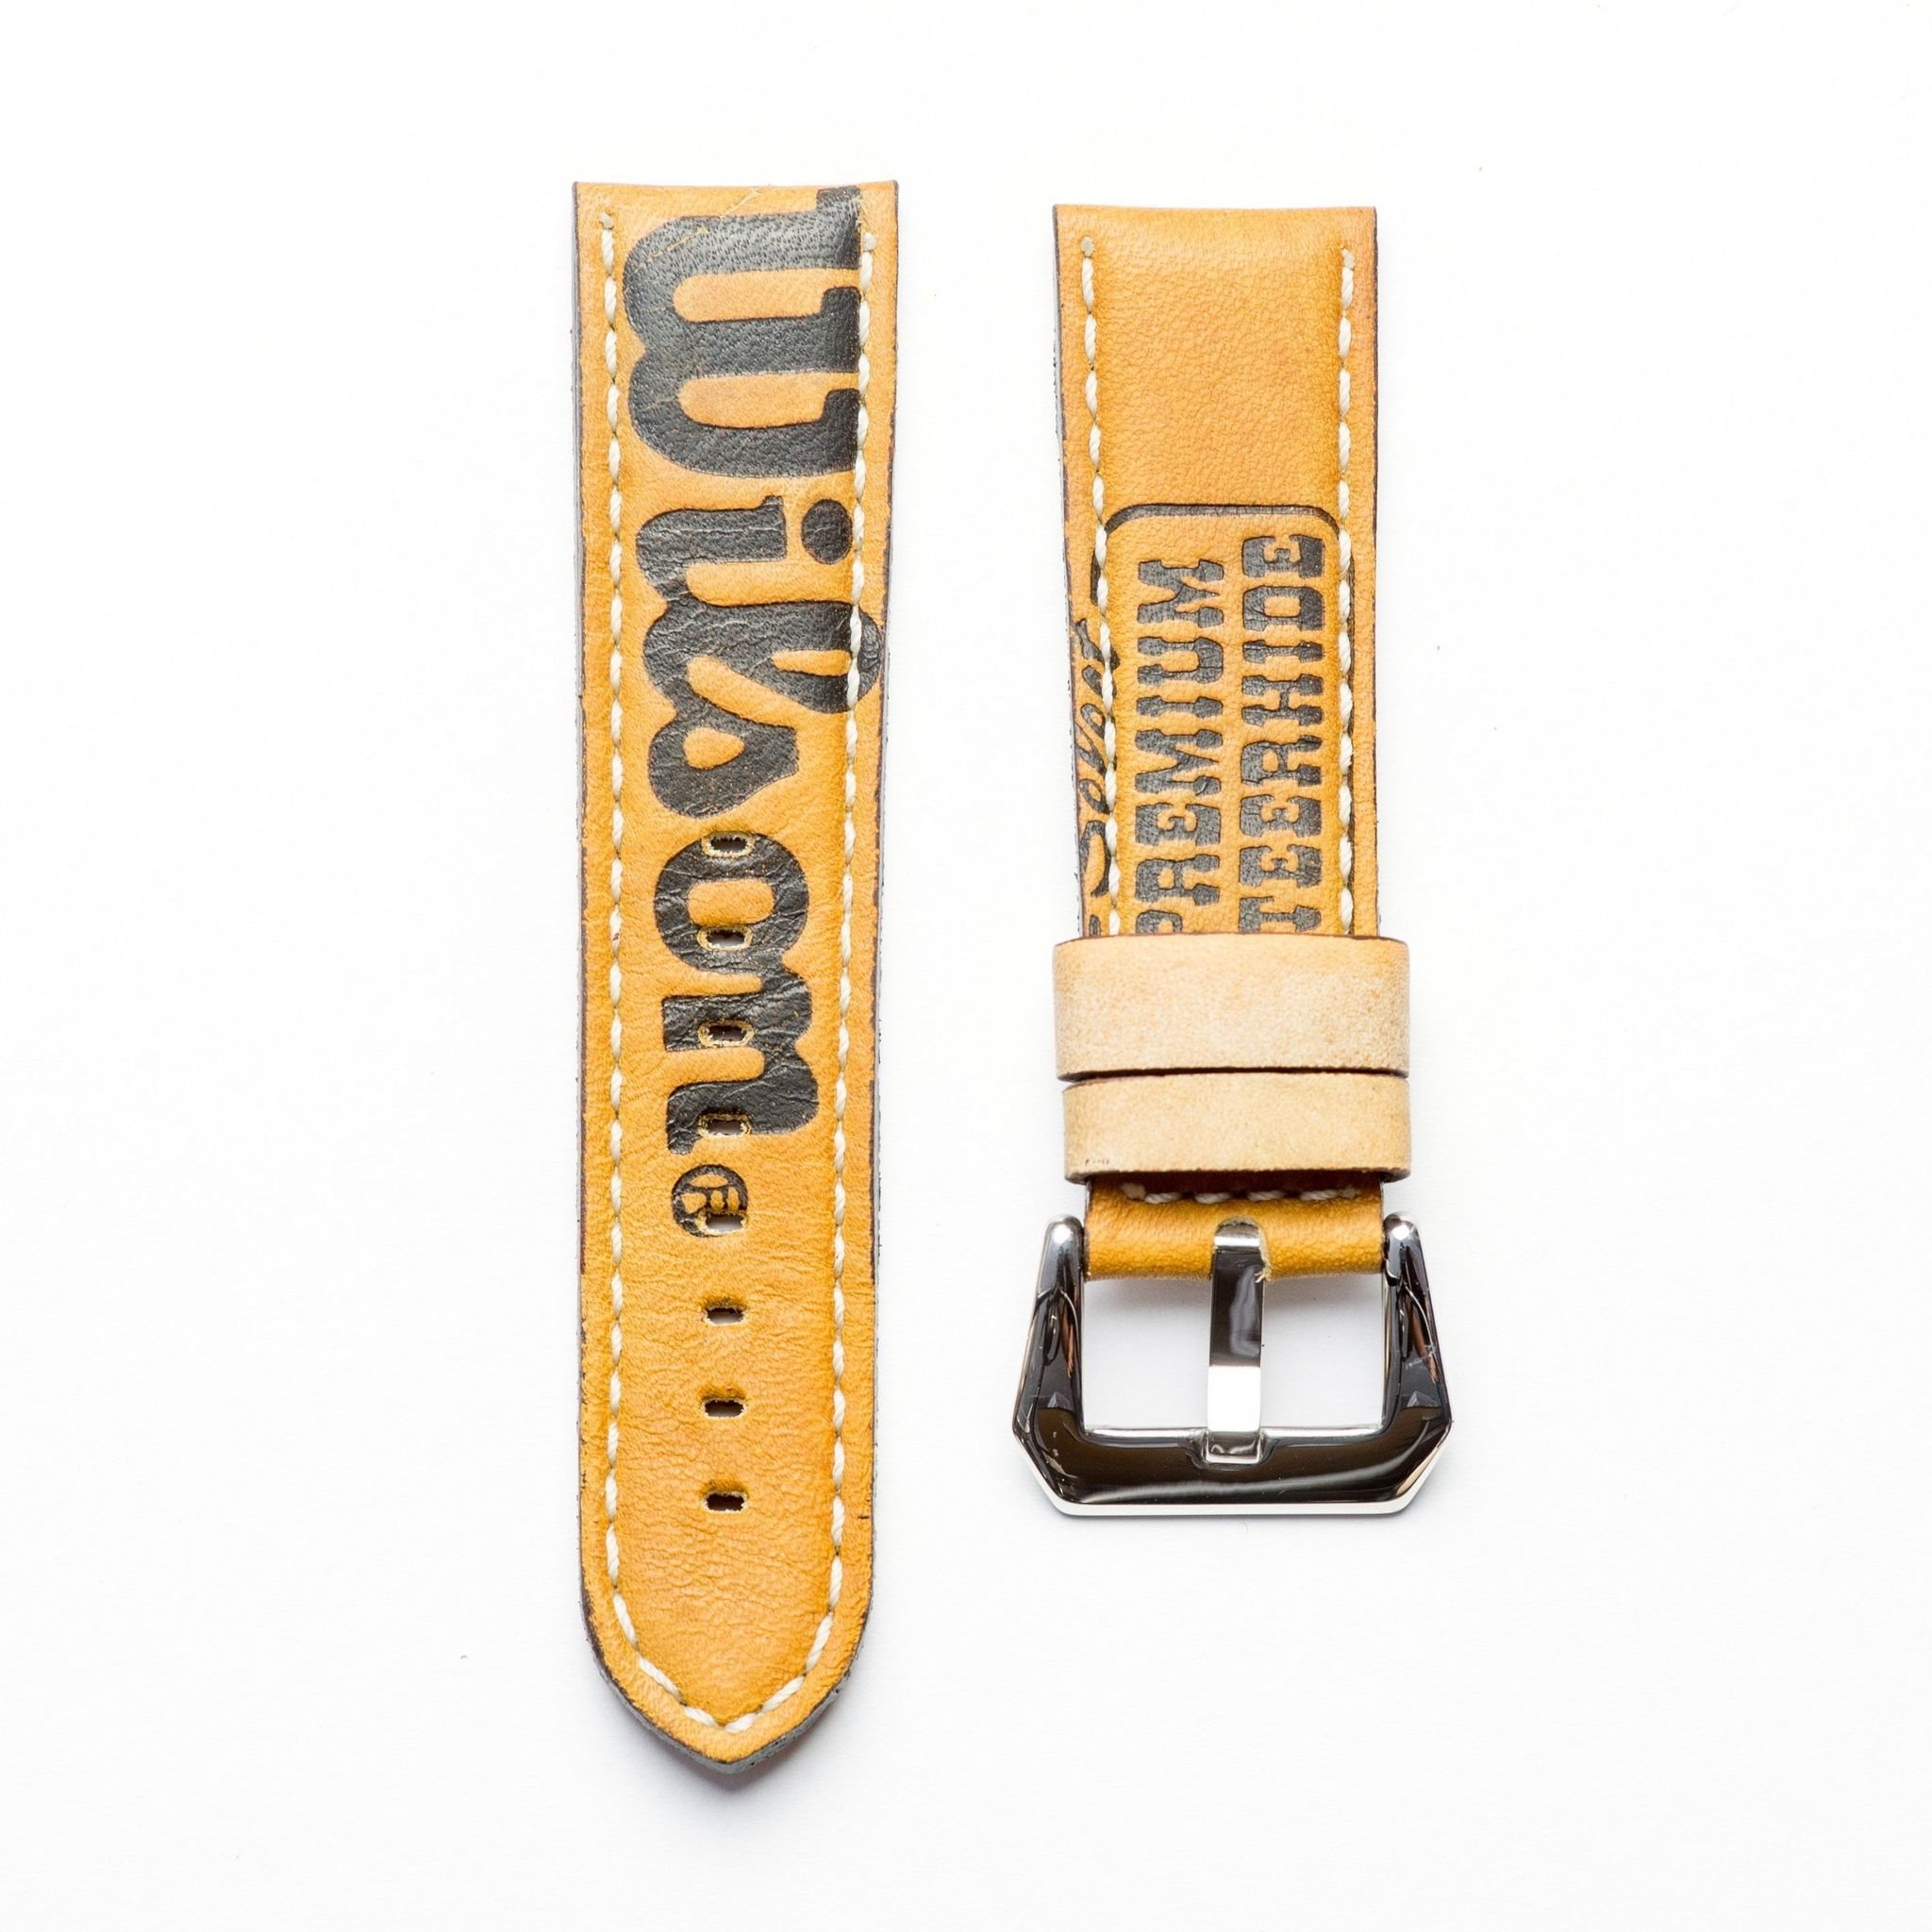 Baseball Leather Watch Strap - Limited Edition (24mm, Yellow Gold Polished) by Milano Straps (Image #2)